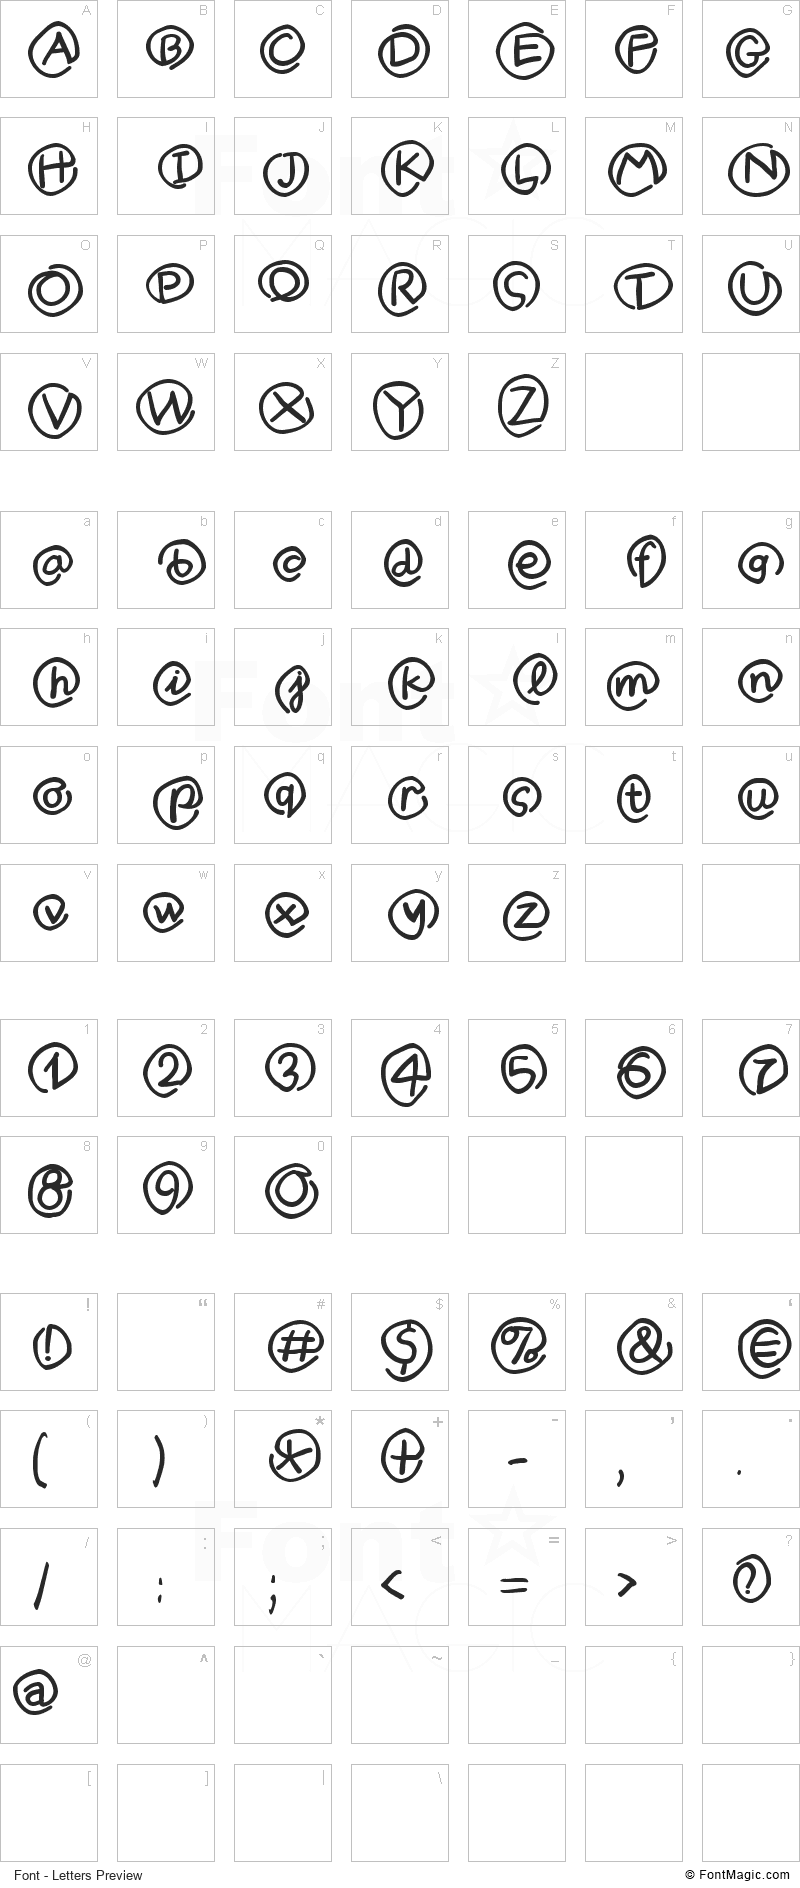 MKlammer Affen Font - All Latters Preview Chart